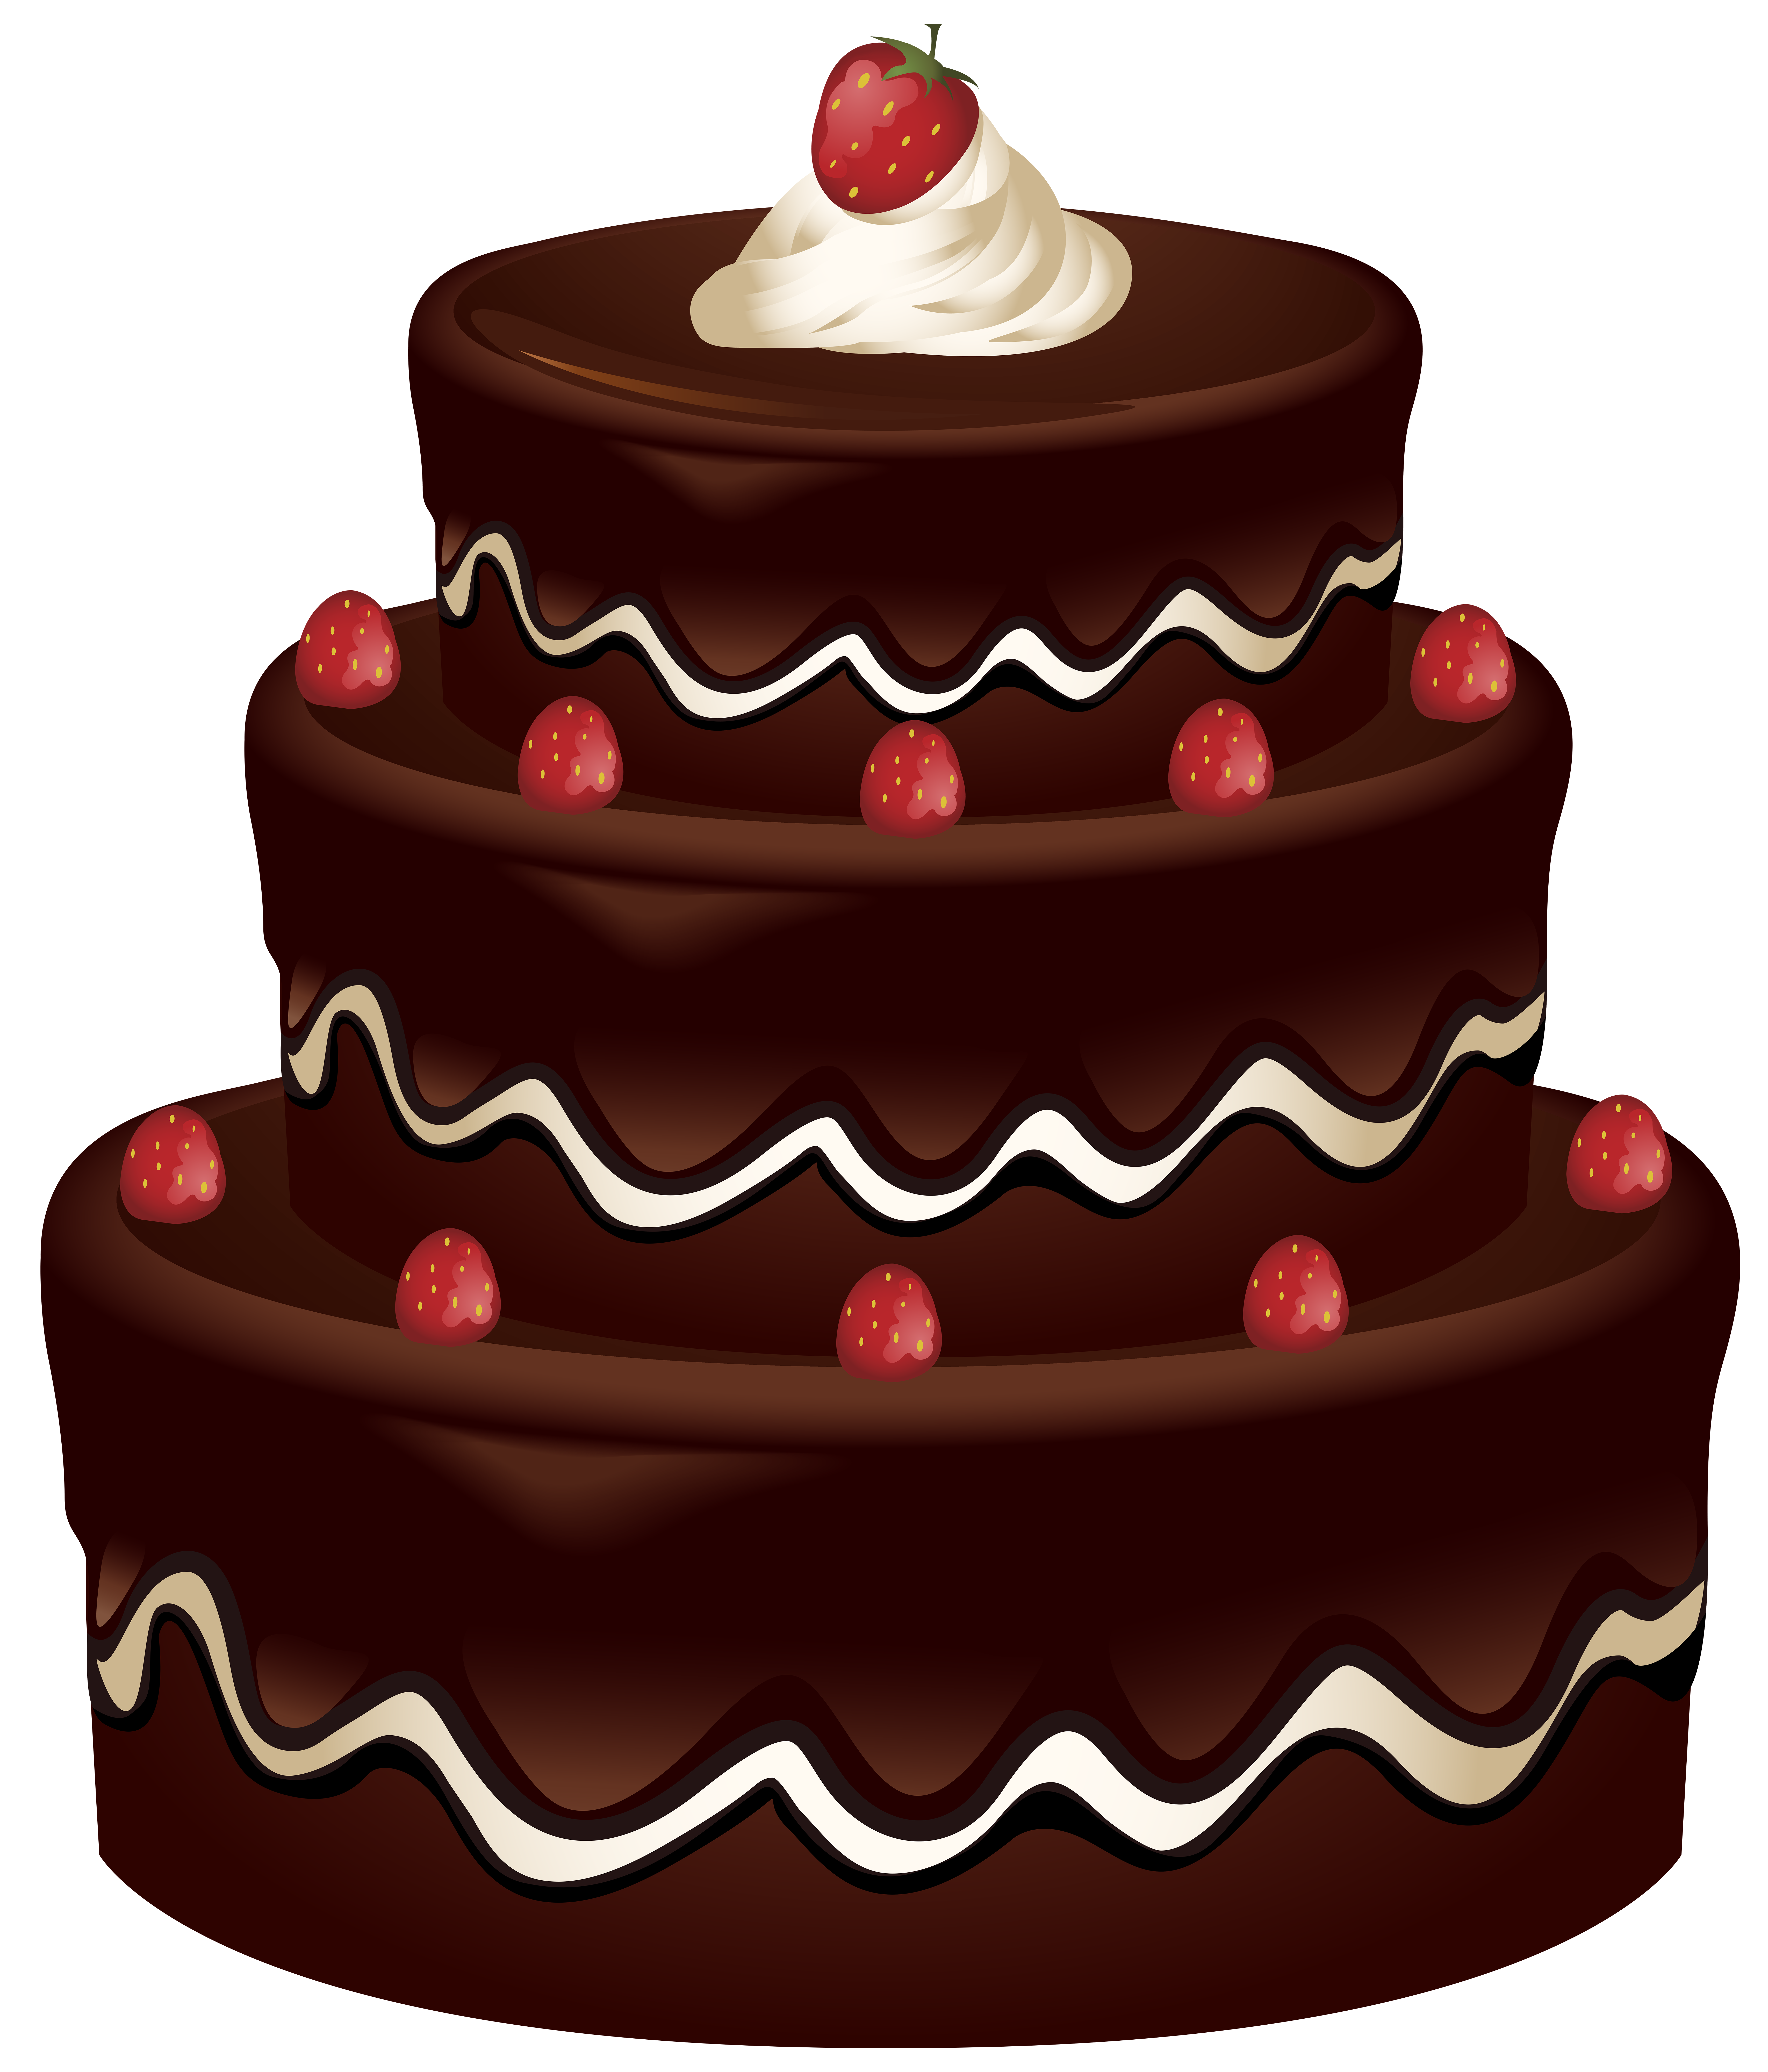 Cake Clip Art PNG Image.